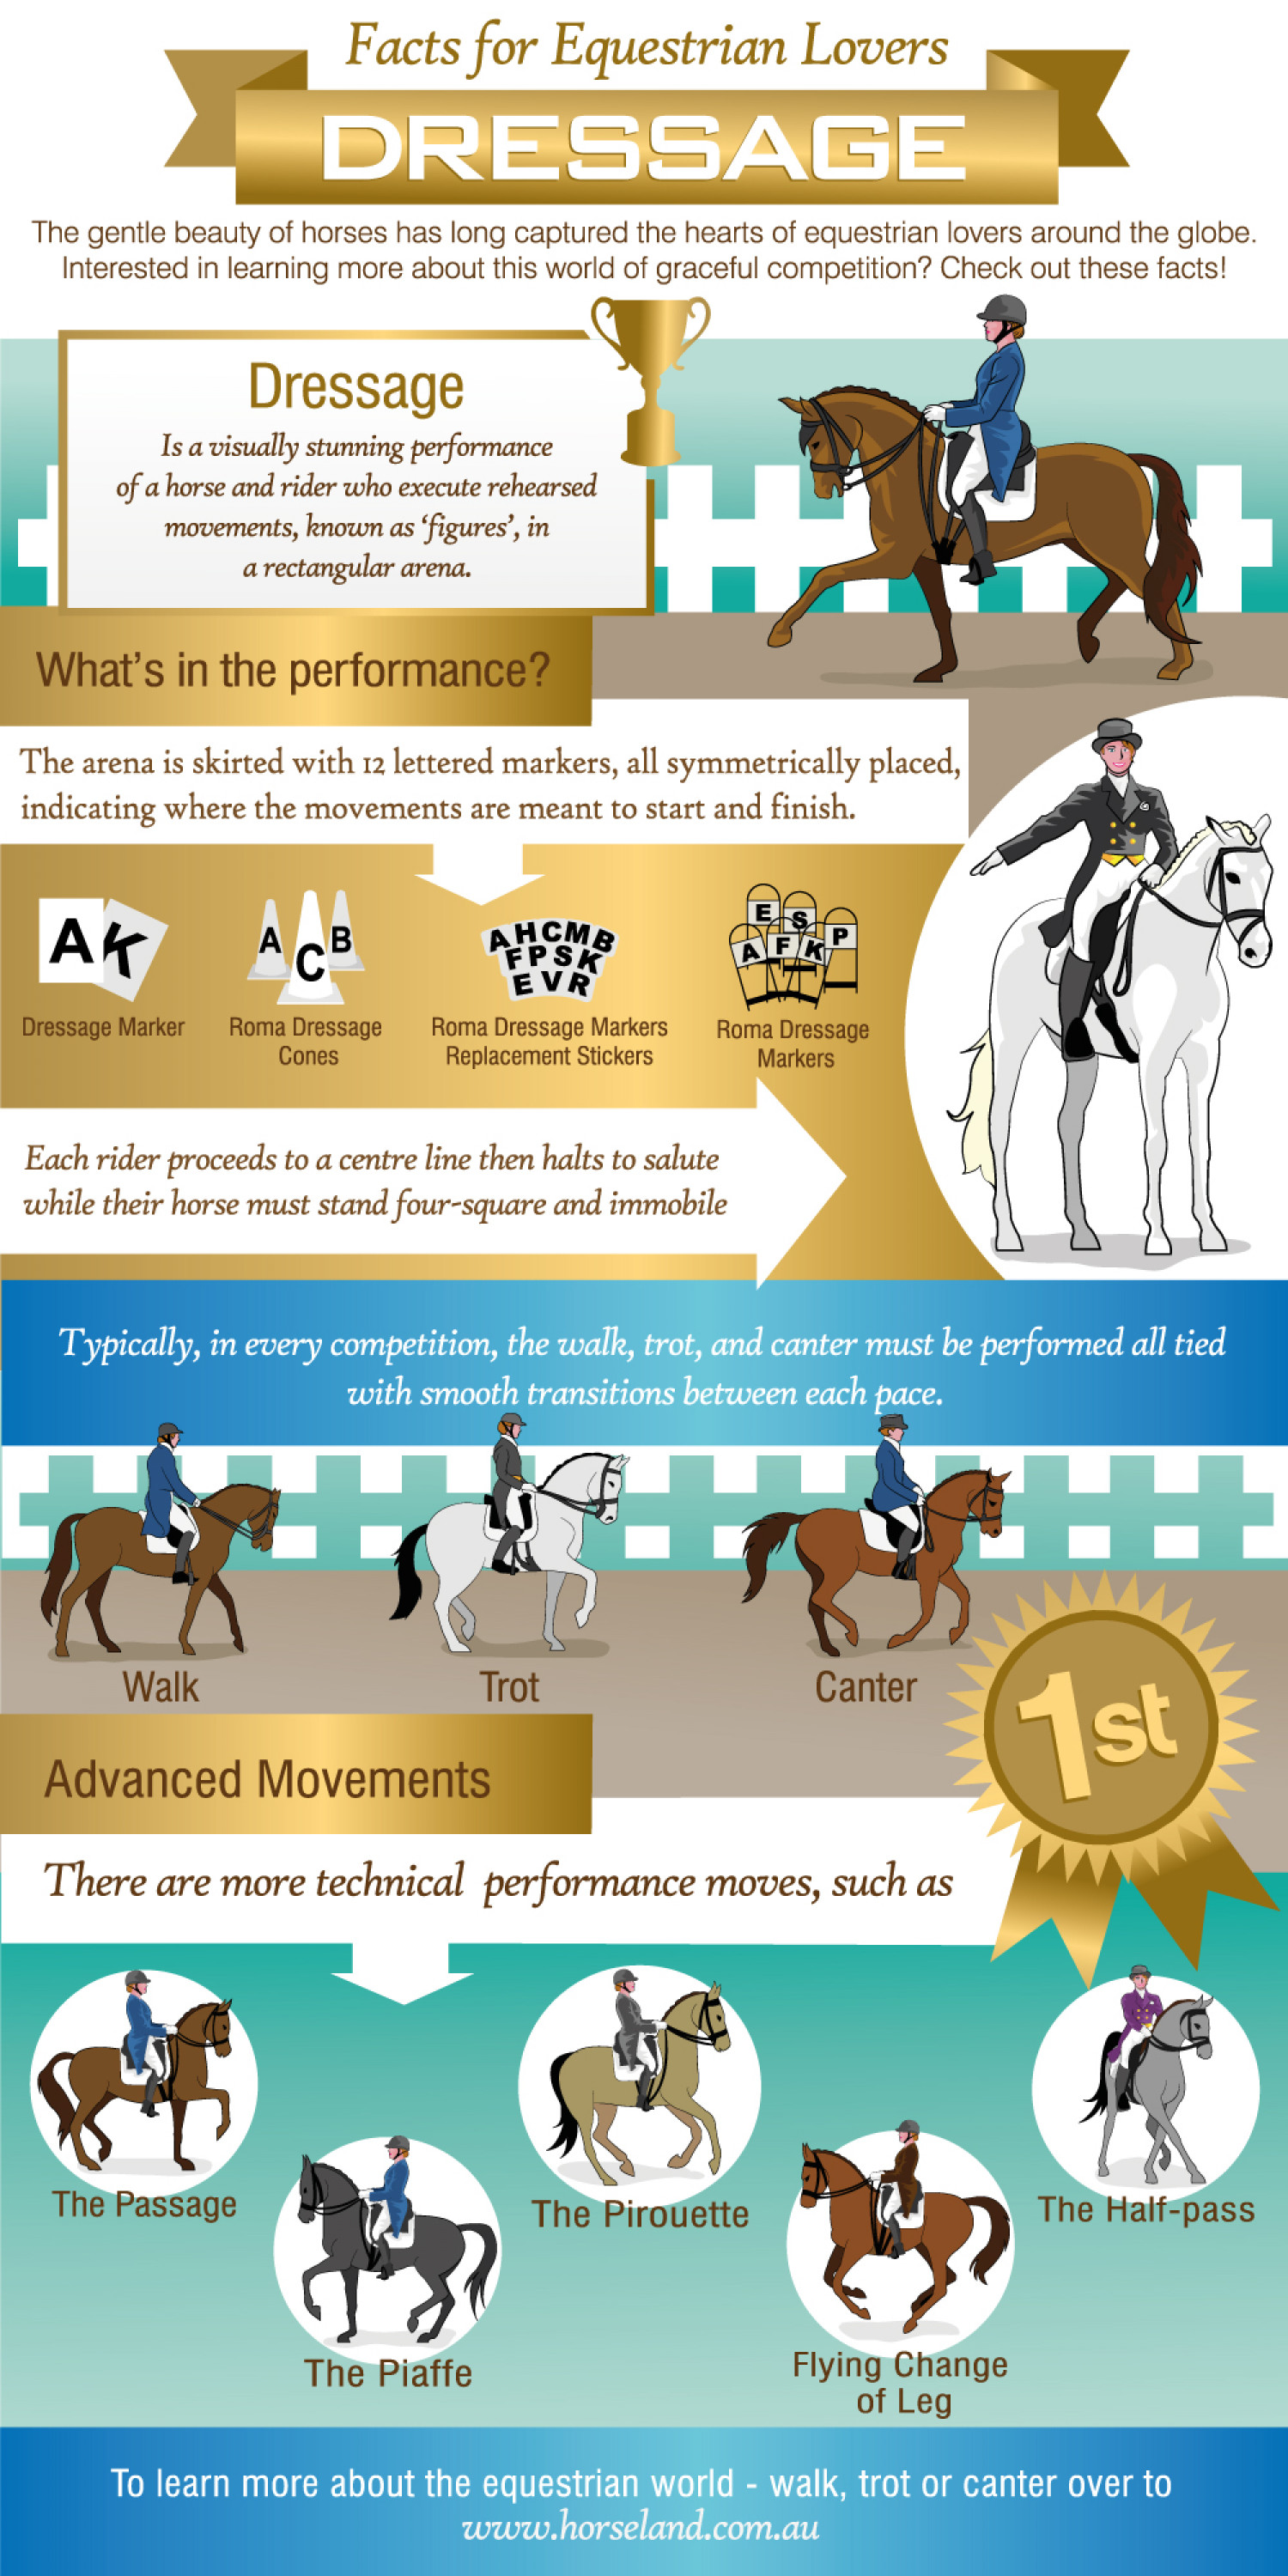 Dressage: Facts for Equestrian Lovers Infographic